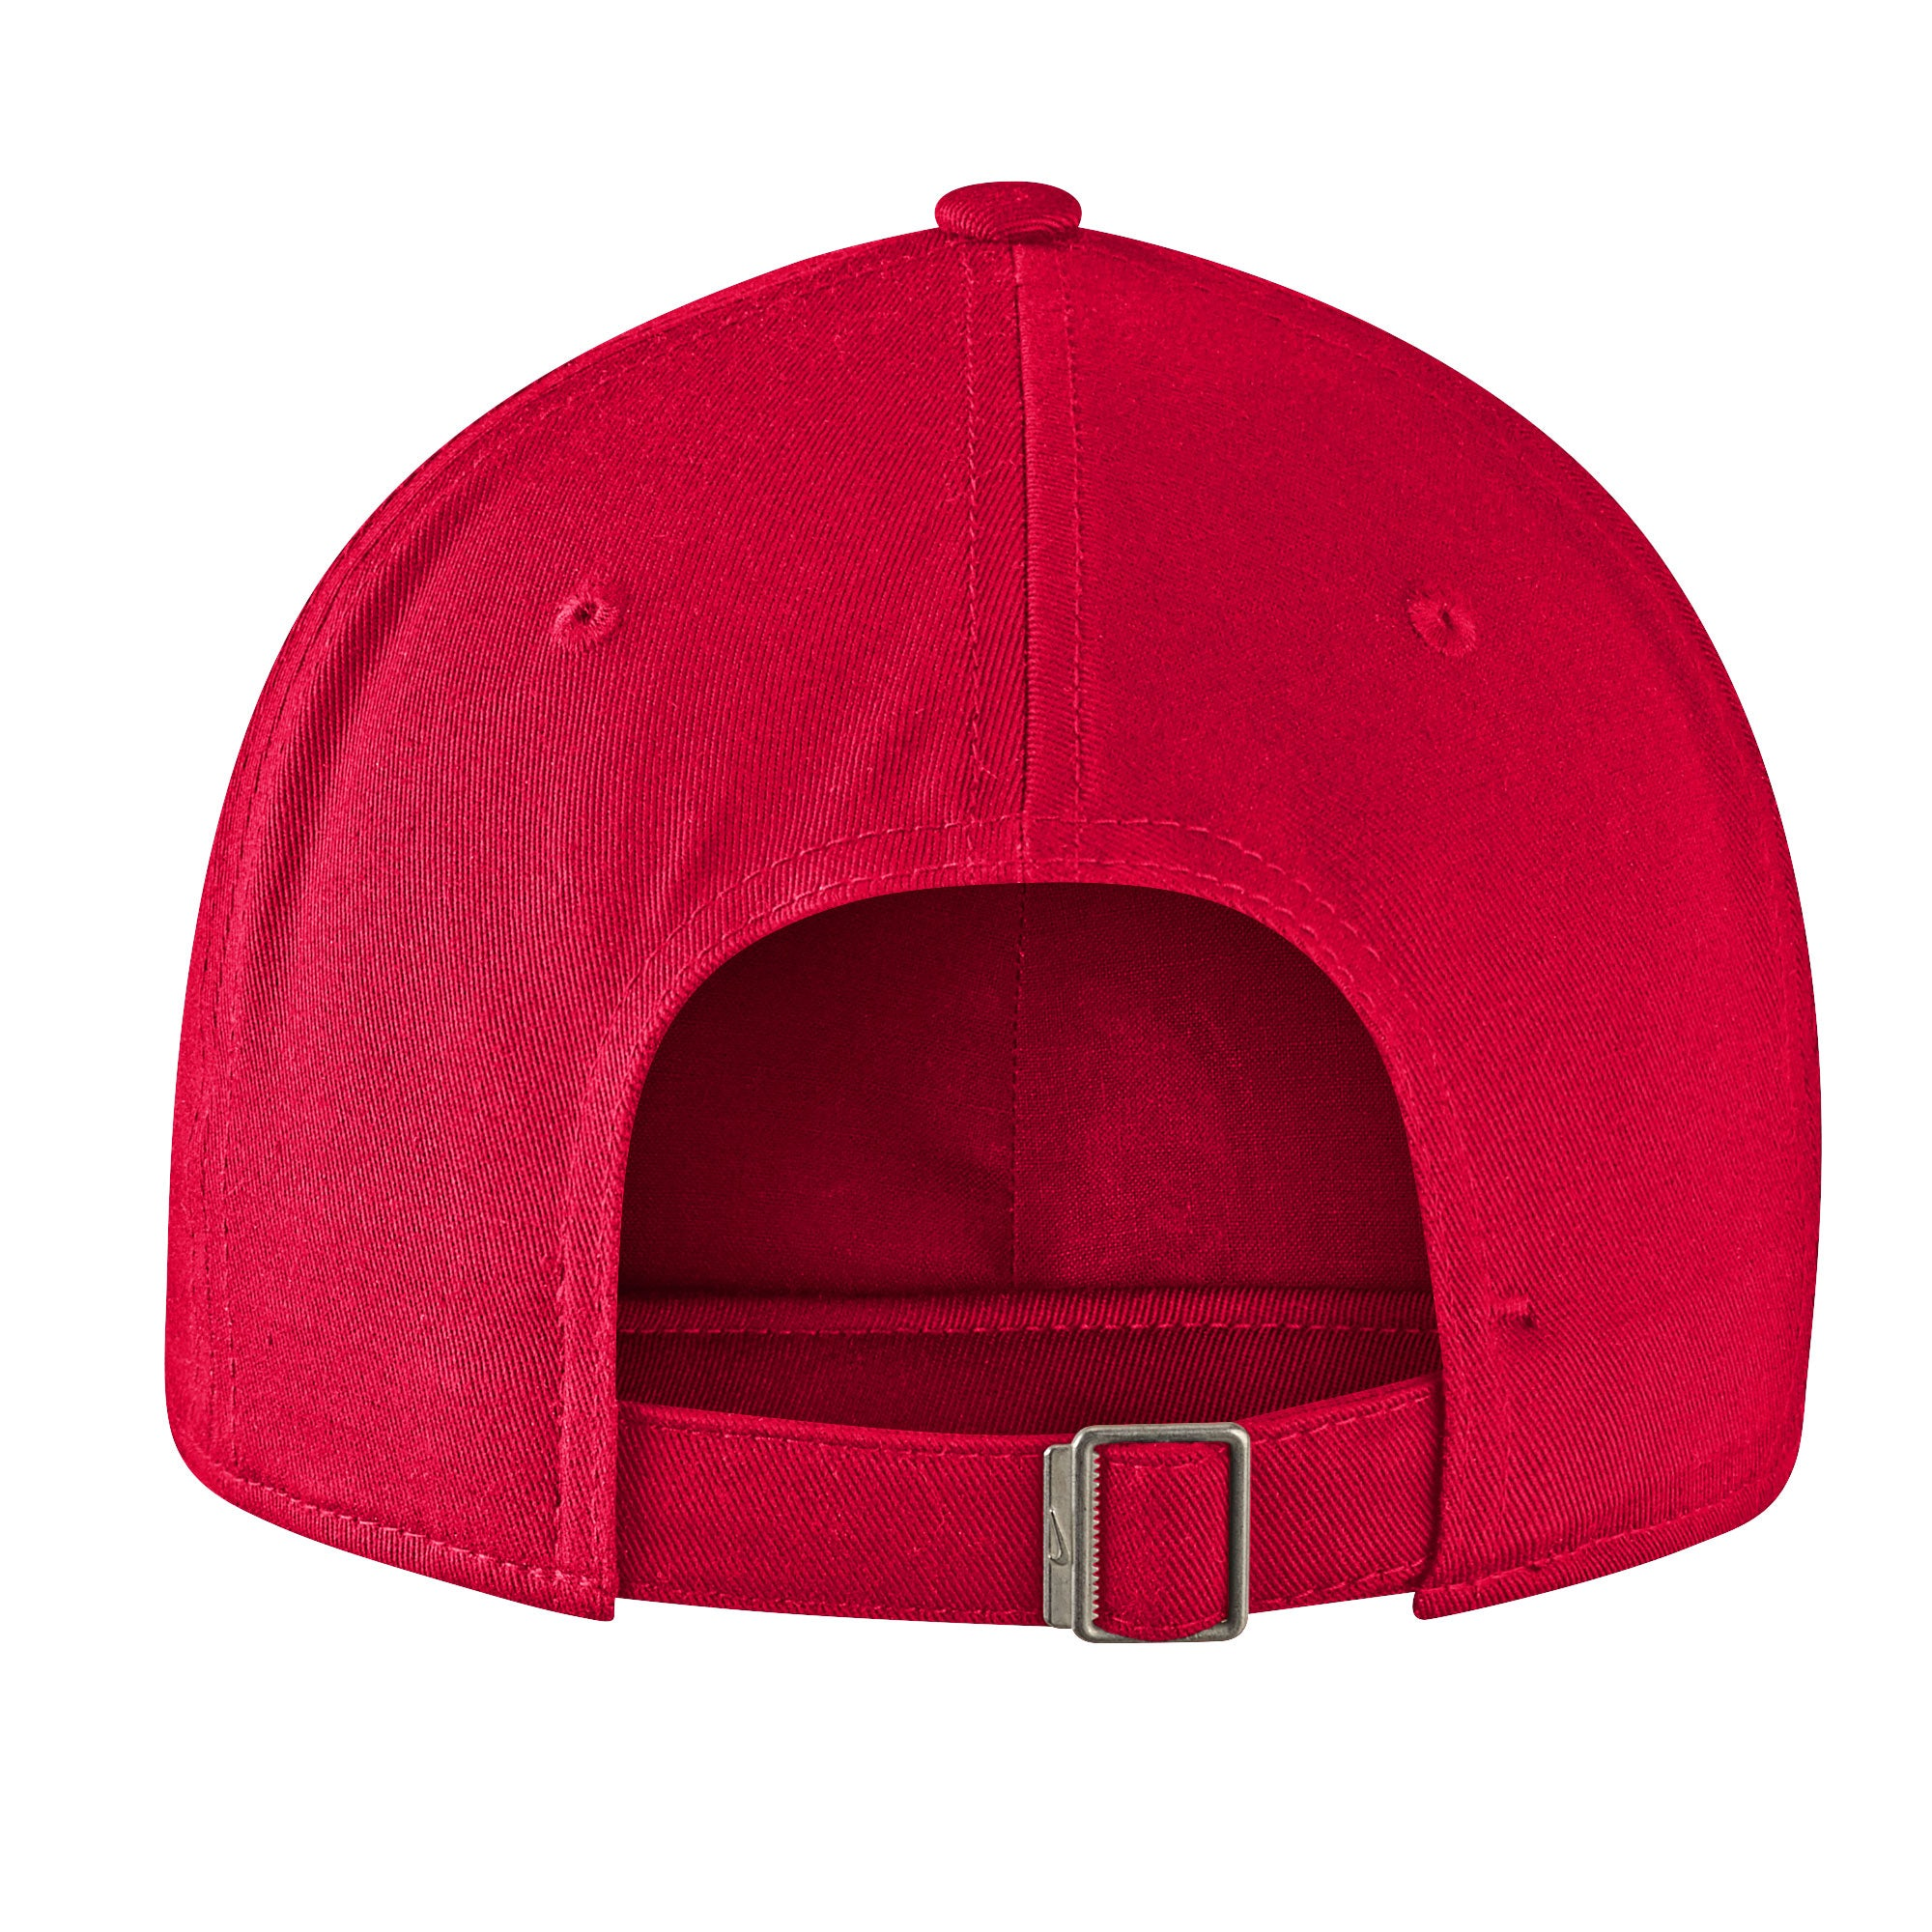 d2c311e0 ... Load image into Gallery viewer, Nike Dri-FIT H86 Authentic Cap, Red